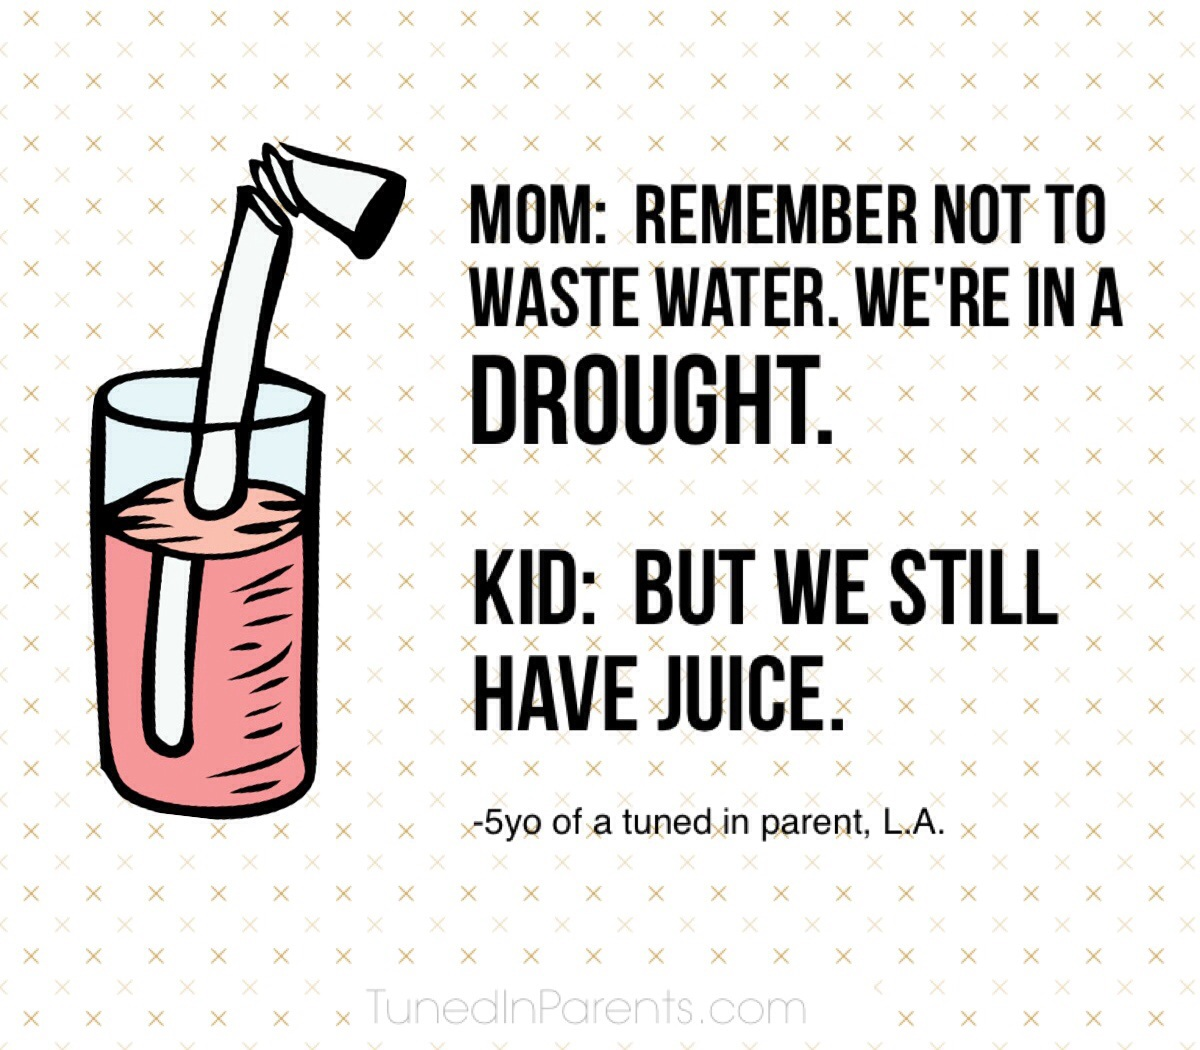 Quips N Quotes Your Parenting Tips Quotes & Quips  Tuned In Parents